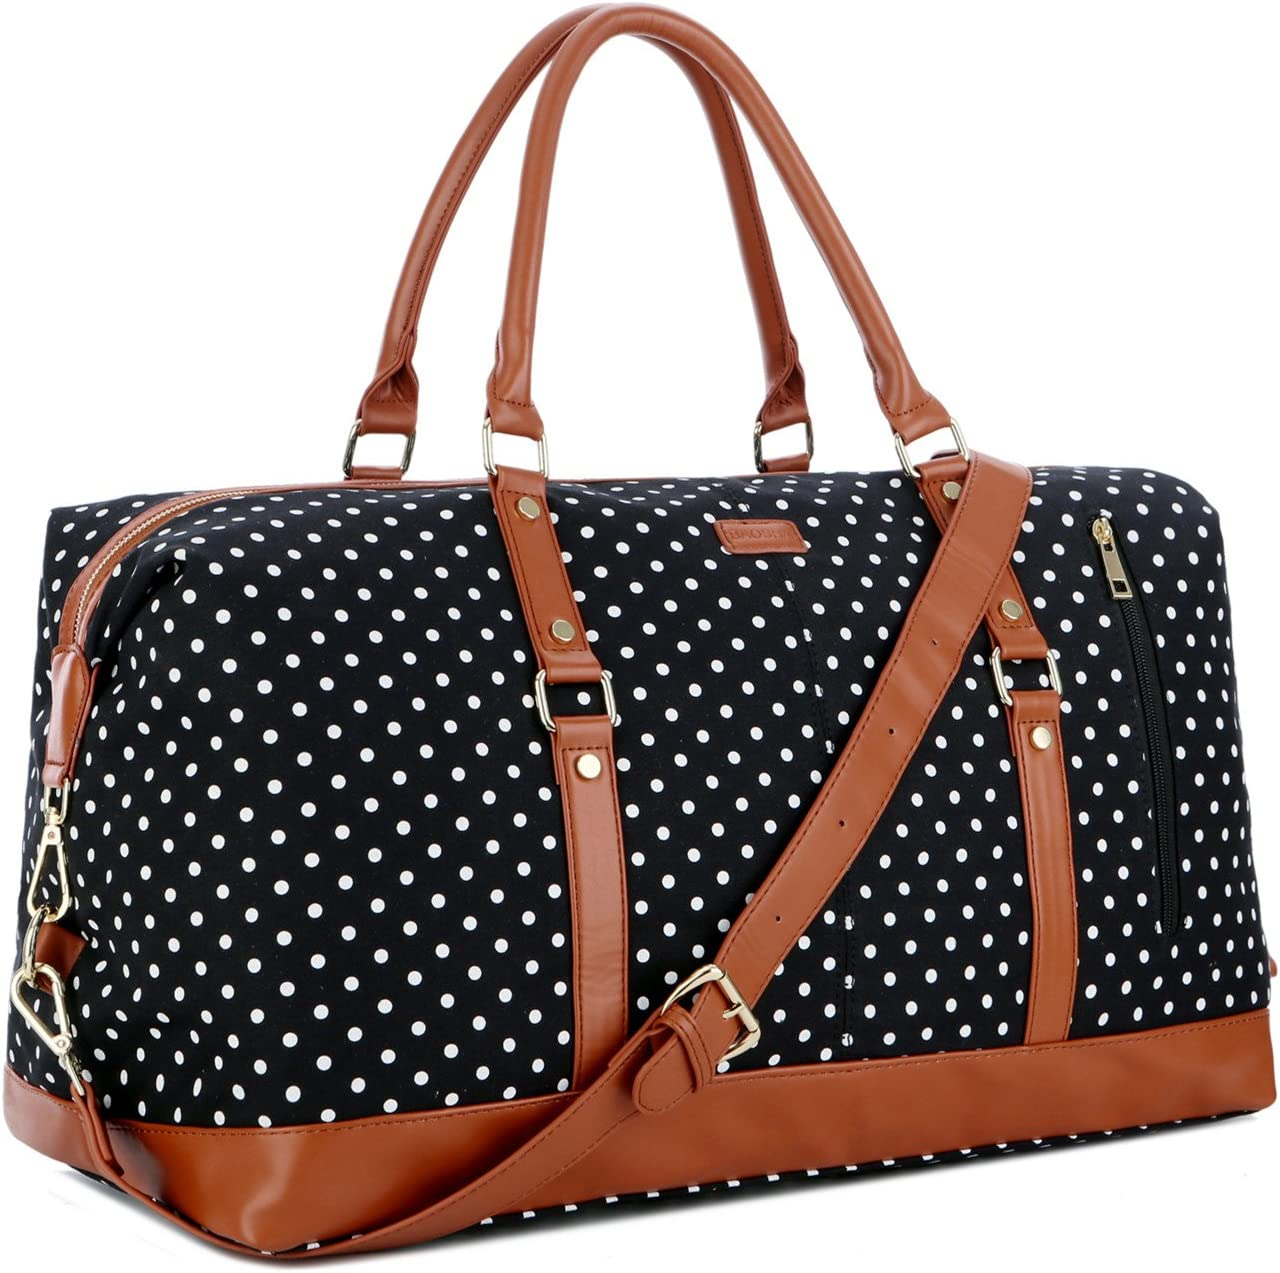 BAOSHA HB-14 Canvas Travel Tote Duffel Bag Carry on Weekender Overnight Bag Oversized for Women and Ladies Black Dot